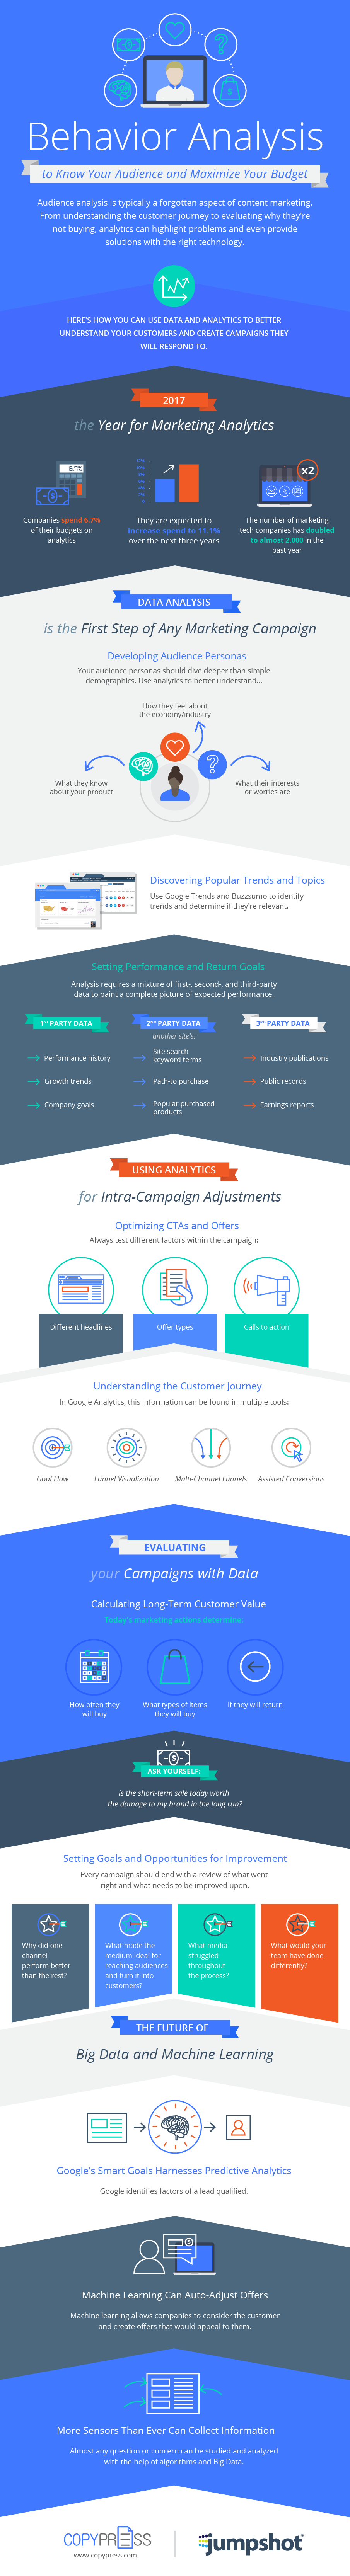 Marketing ROI [Infographic]